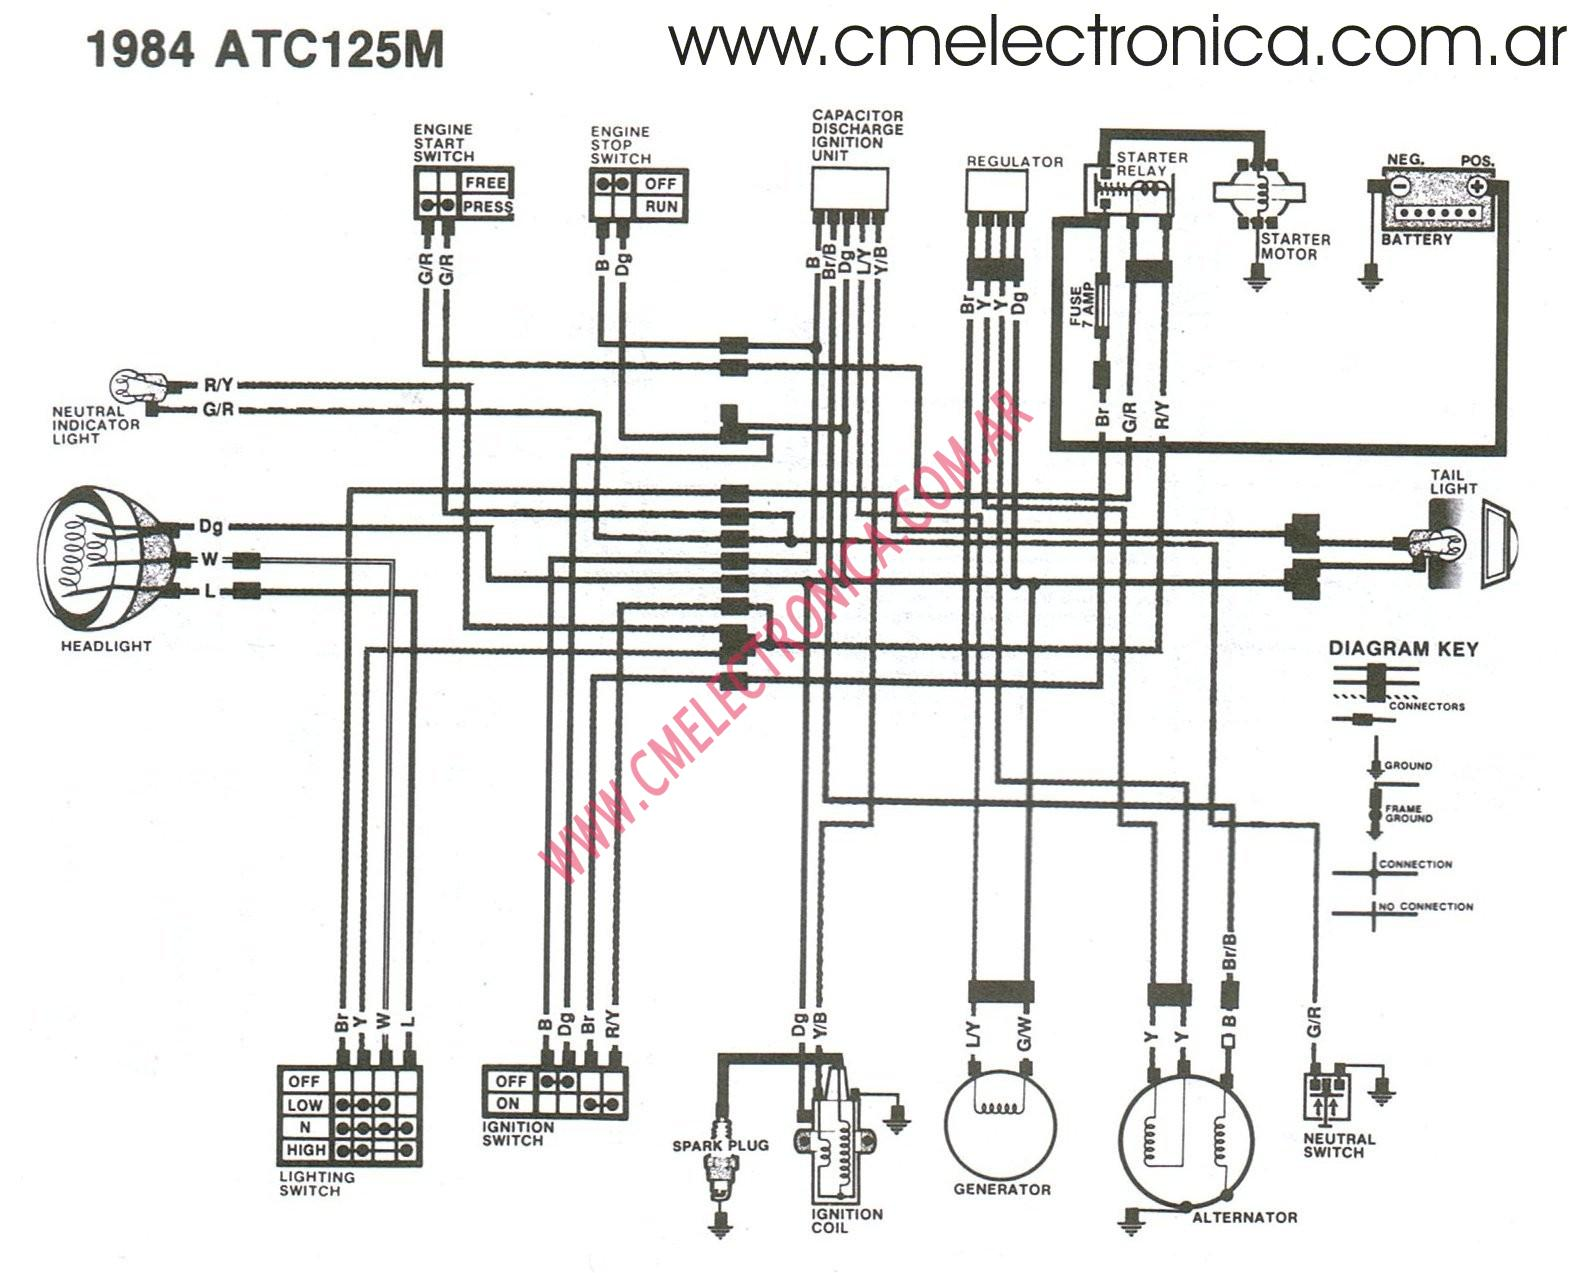 hight resolution of 84 honda 125 atc wiring diagram 84 get free image about wiring diagram honda accord 95 v6 2 7 wiring diagram honda civic